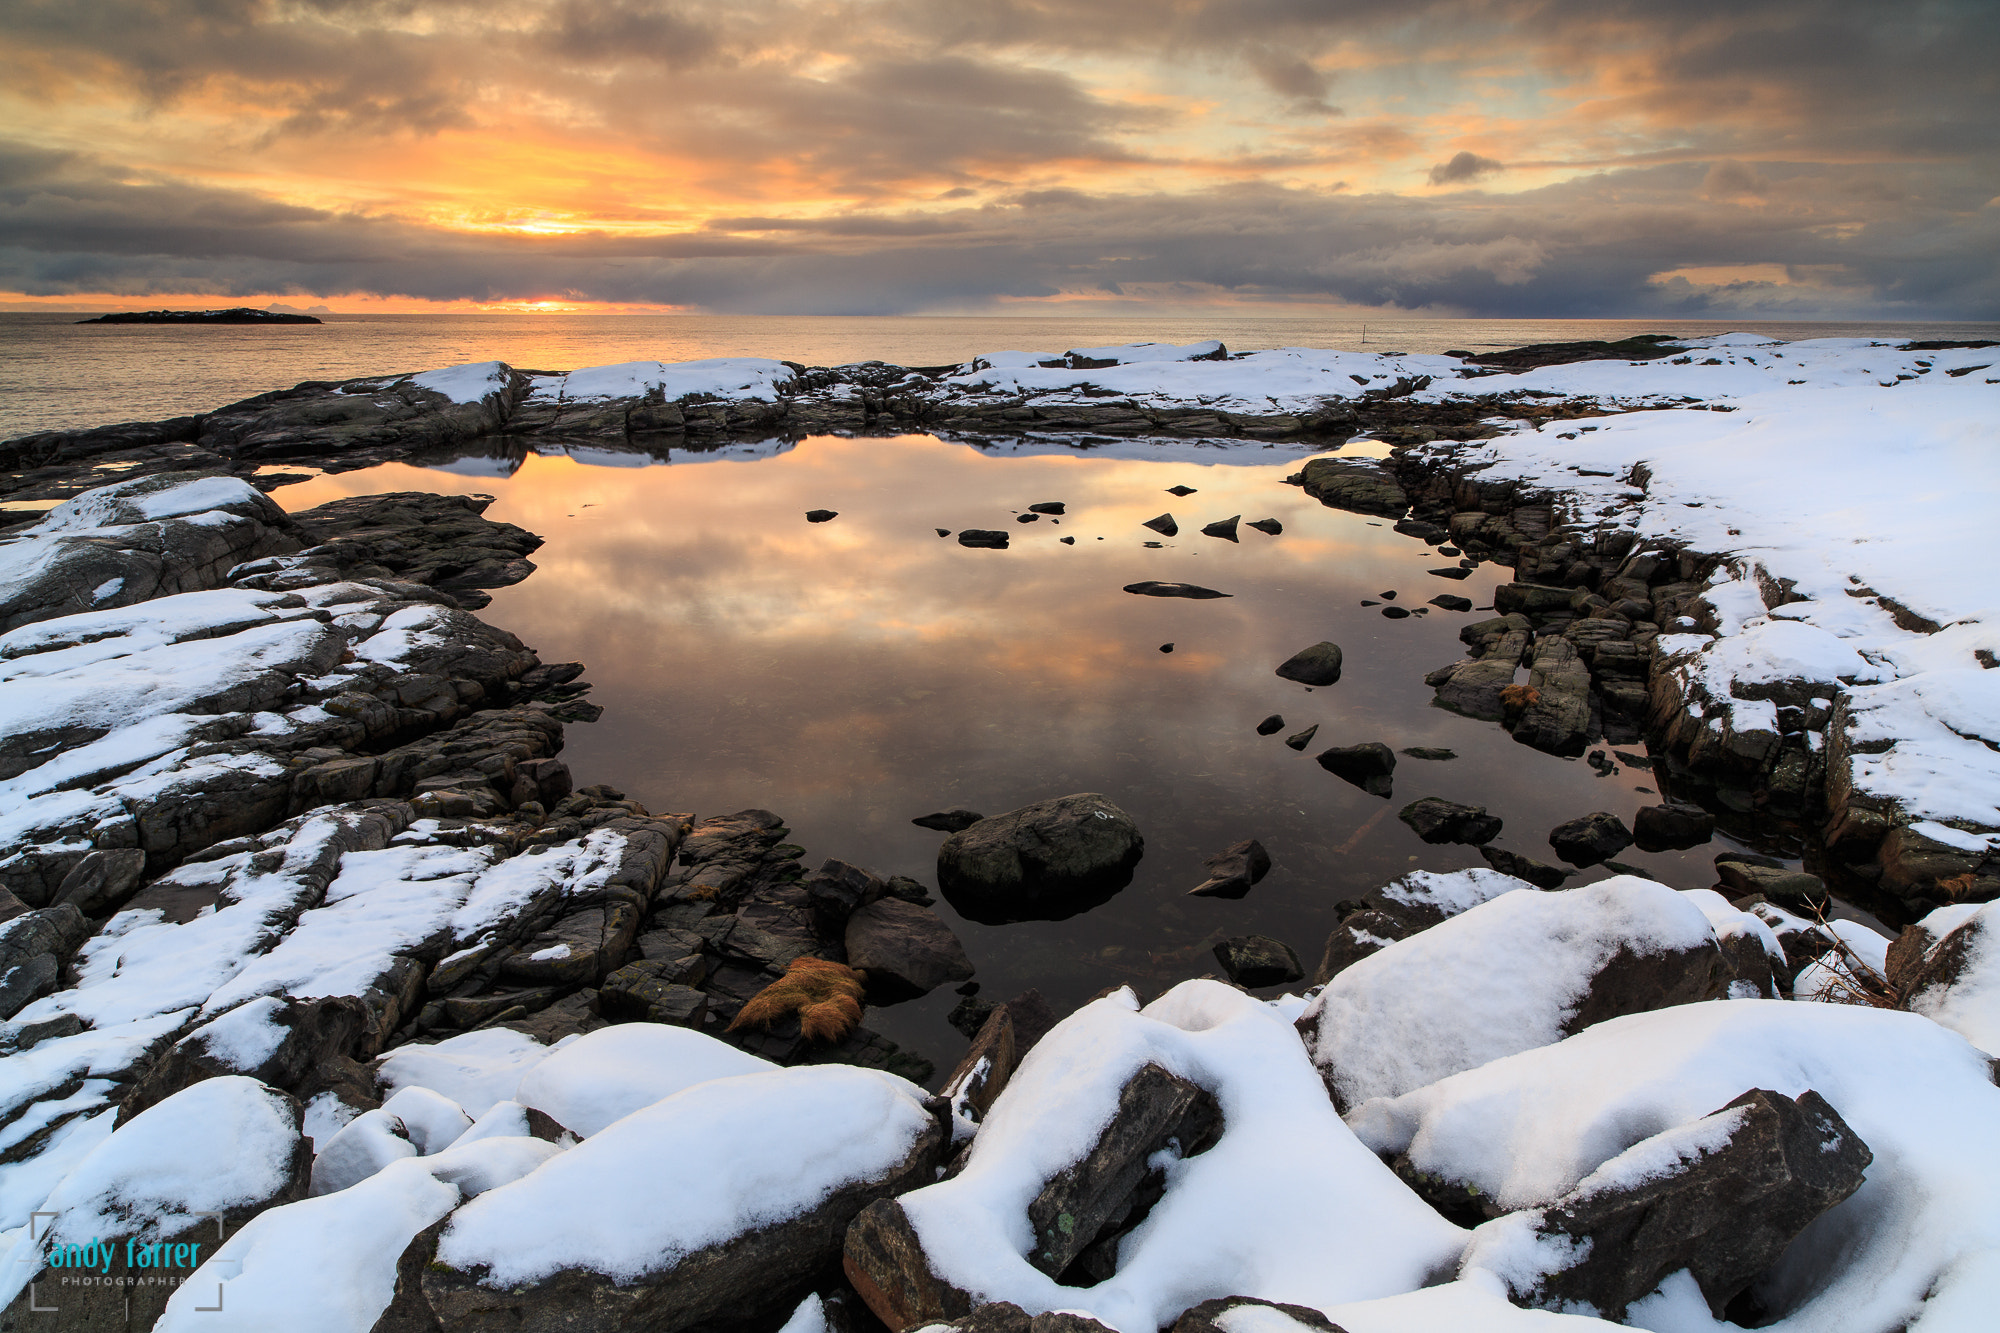 Photograph Å by Andy Farrer on 500px